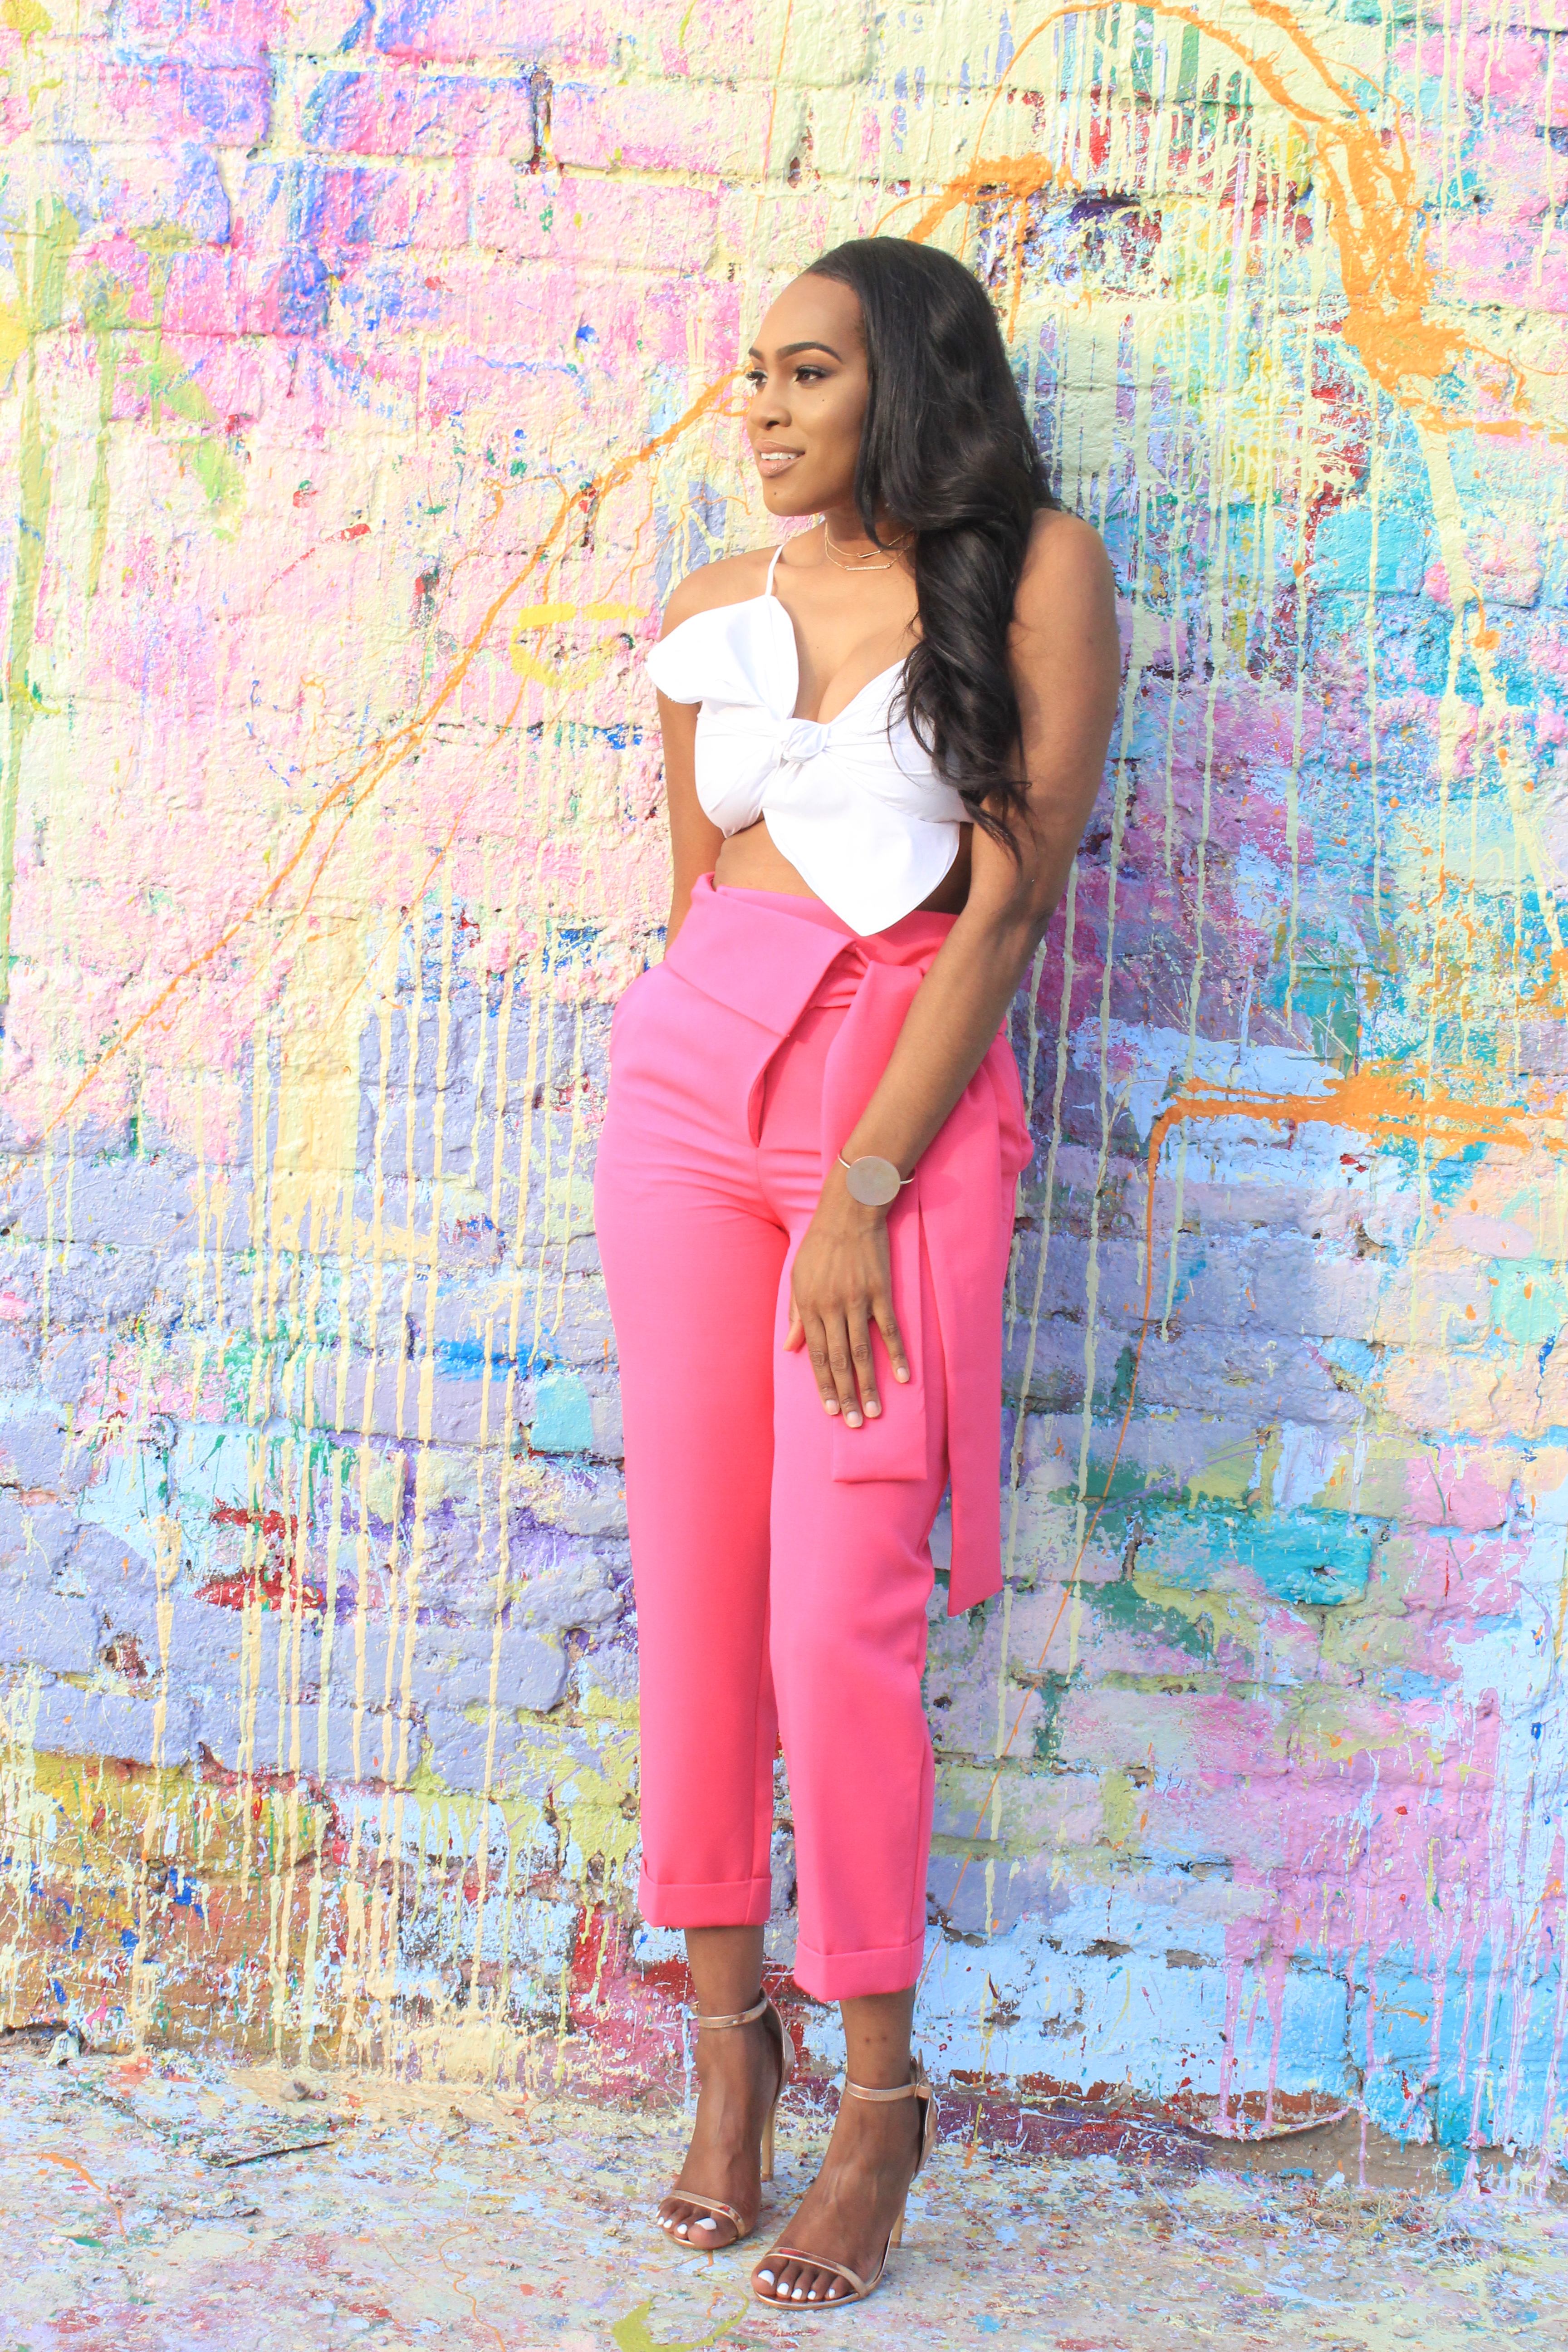 Style files-Hot-pink-asos-pants-with-origami-waist-tie-detail-truffle-collection-barely-there-heel-sandal-rose-gold-forever-21-contemporary-white-cropt-top-perfect-summer-pants-top-birmingham-bloggers-oohlalablog-3